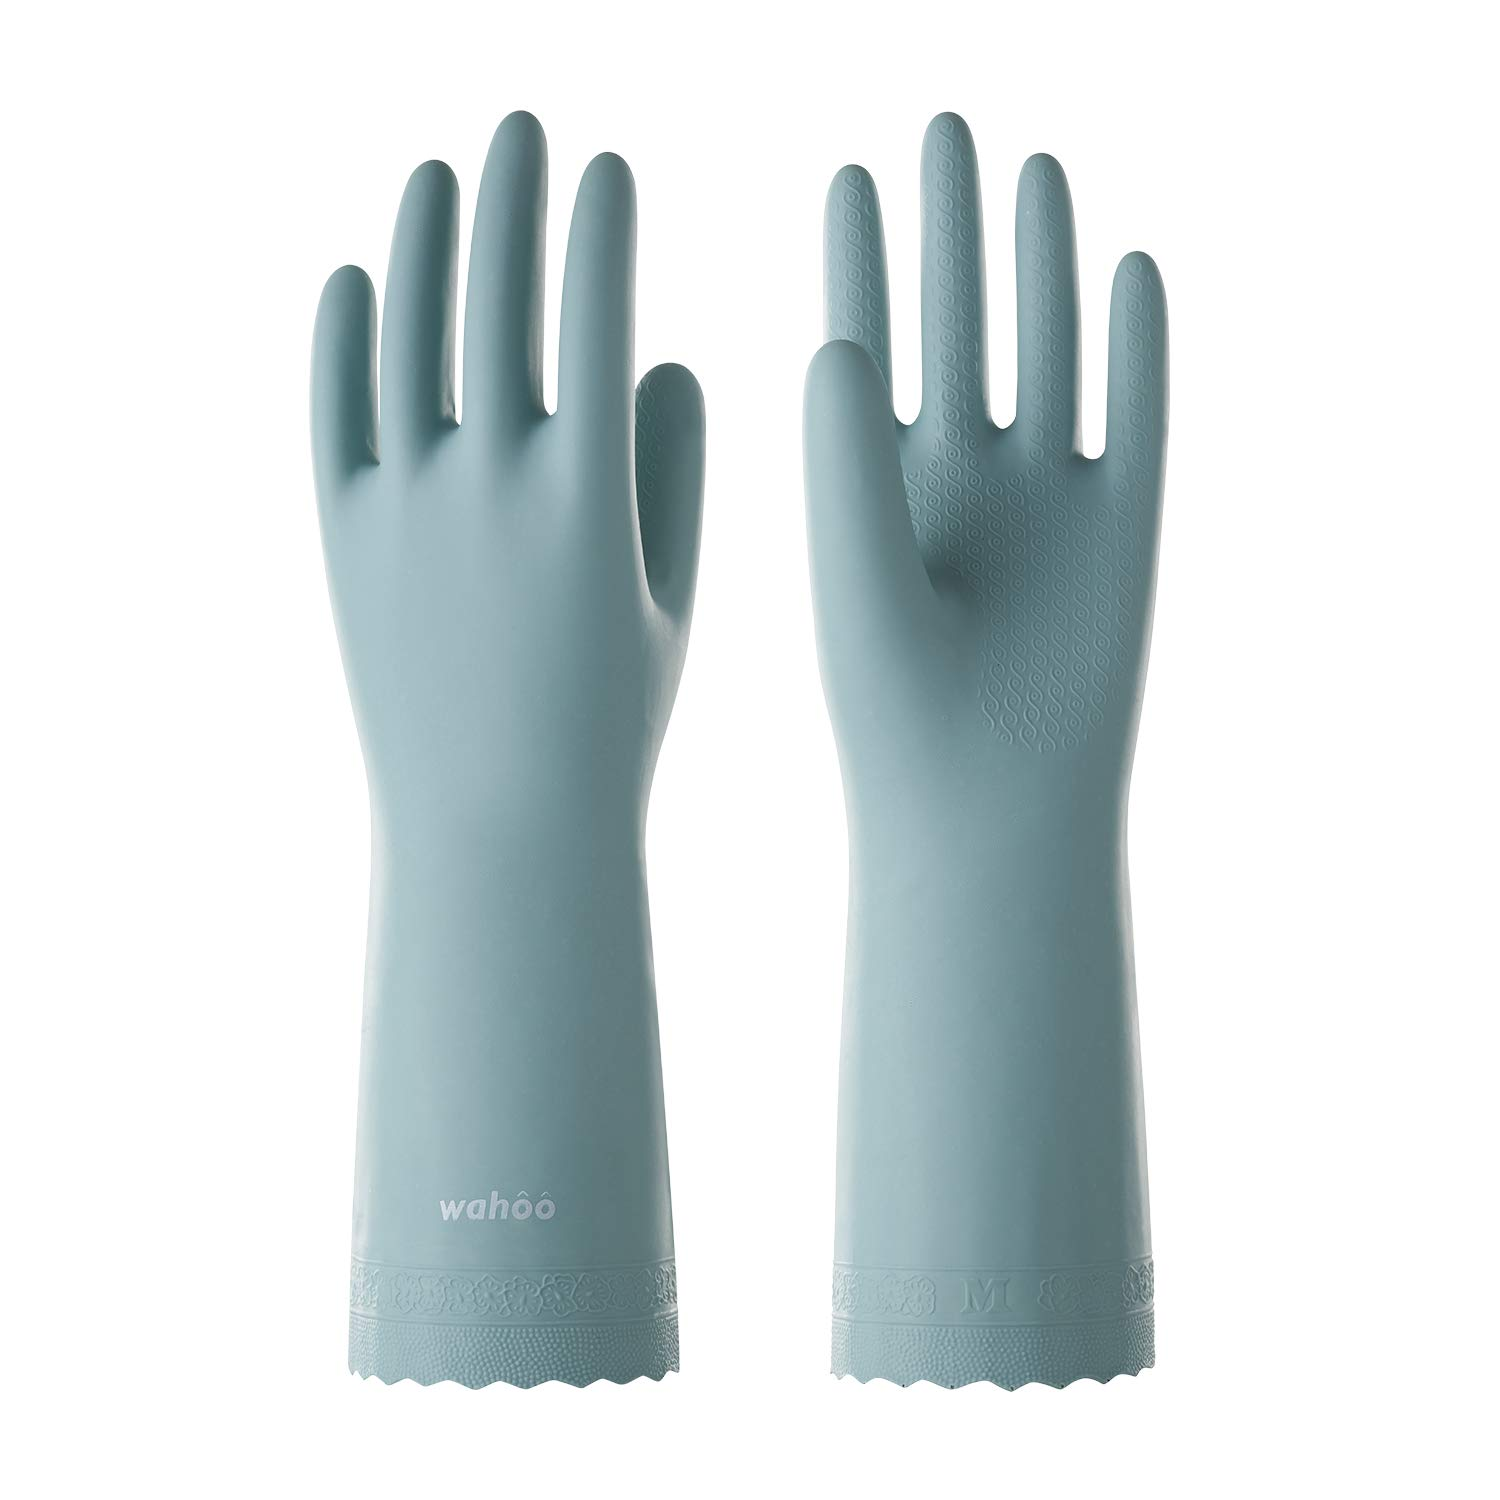 LANON Protection Waterproof Dishwashing Gloves, wahoo PVC Ultra-thin Reusable Household Gloves, Unlined, Non-slip, DEHP Free, Anti-aing, Intertek Listed, Medium